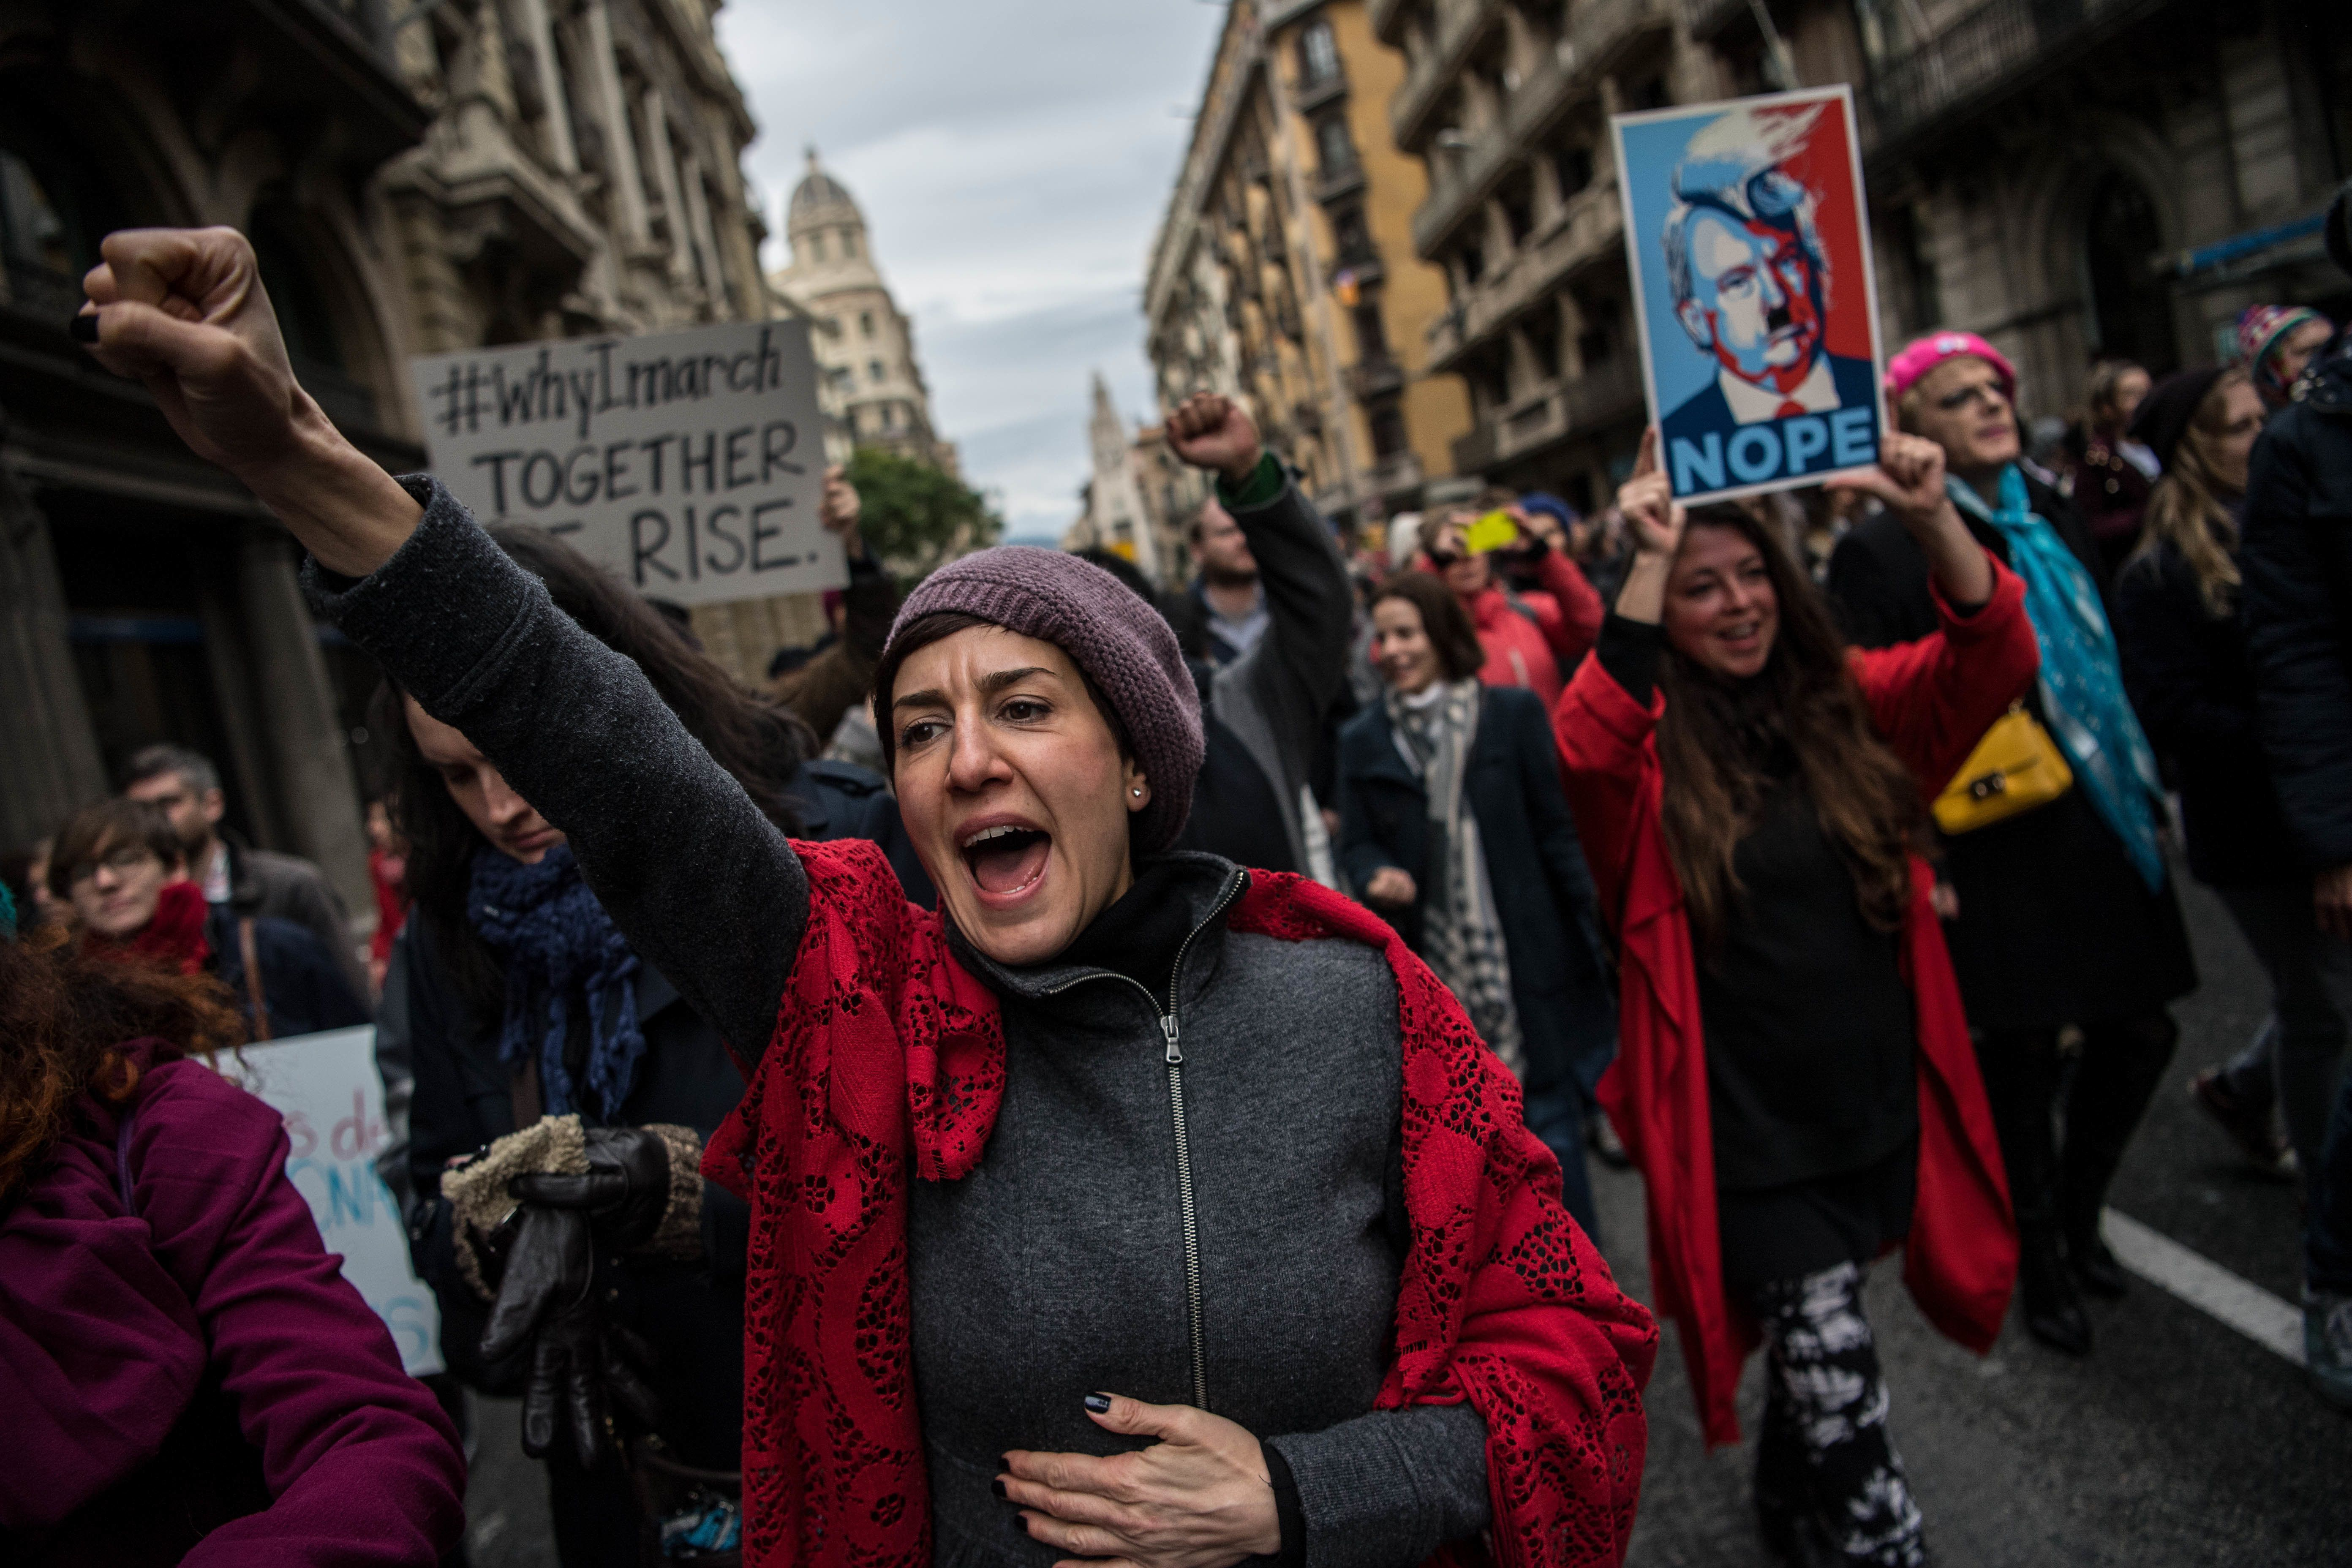 A woman marches in Barcelona, Spain on January